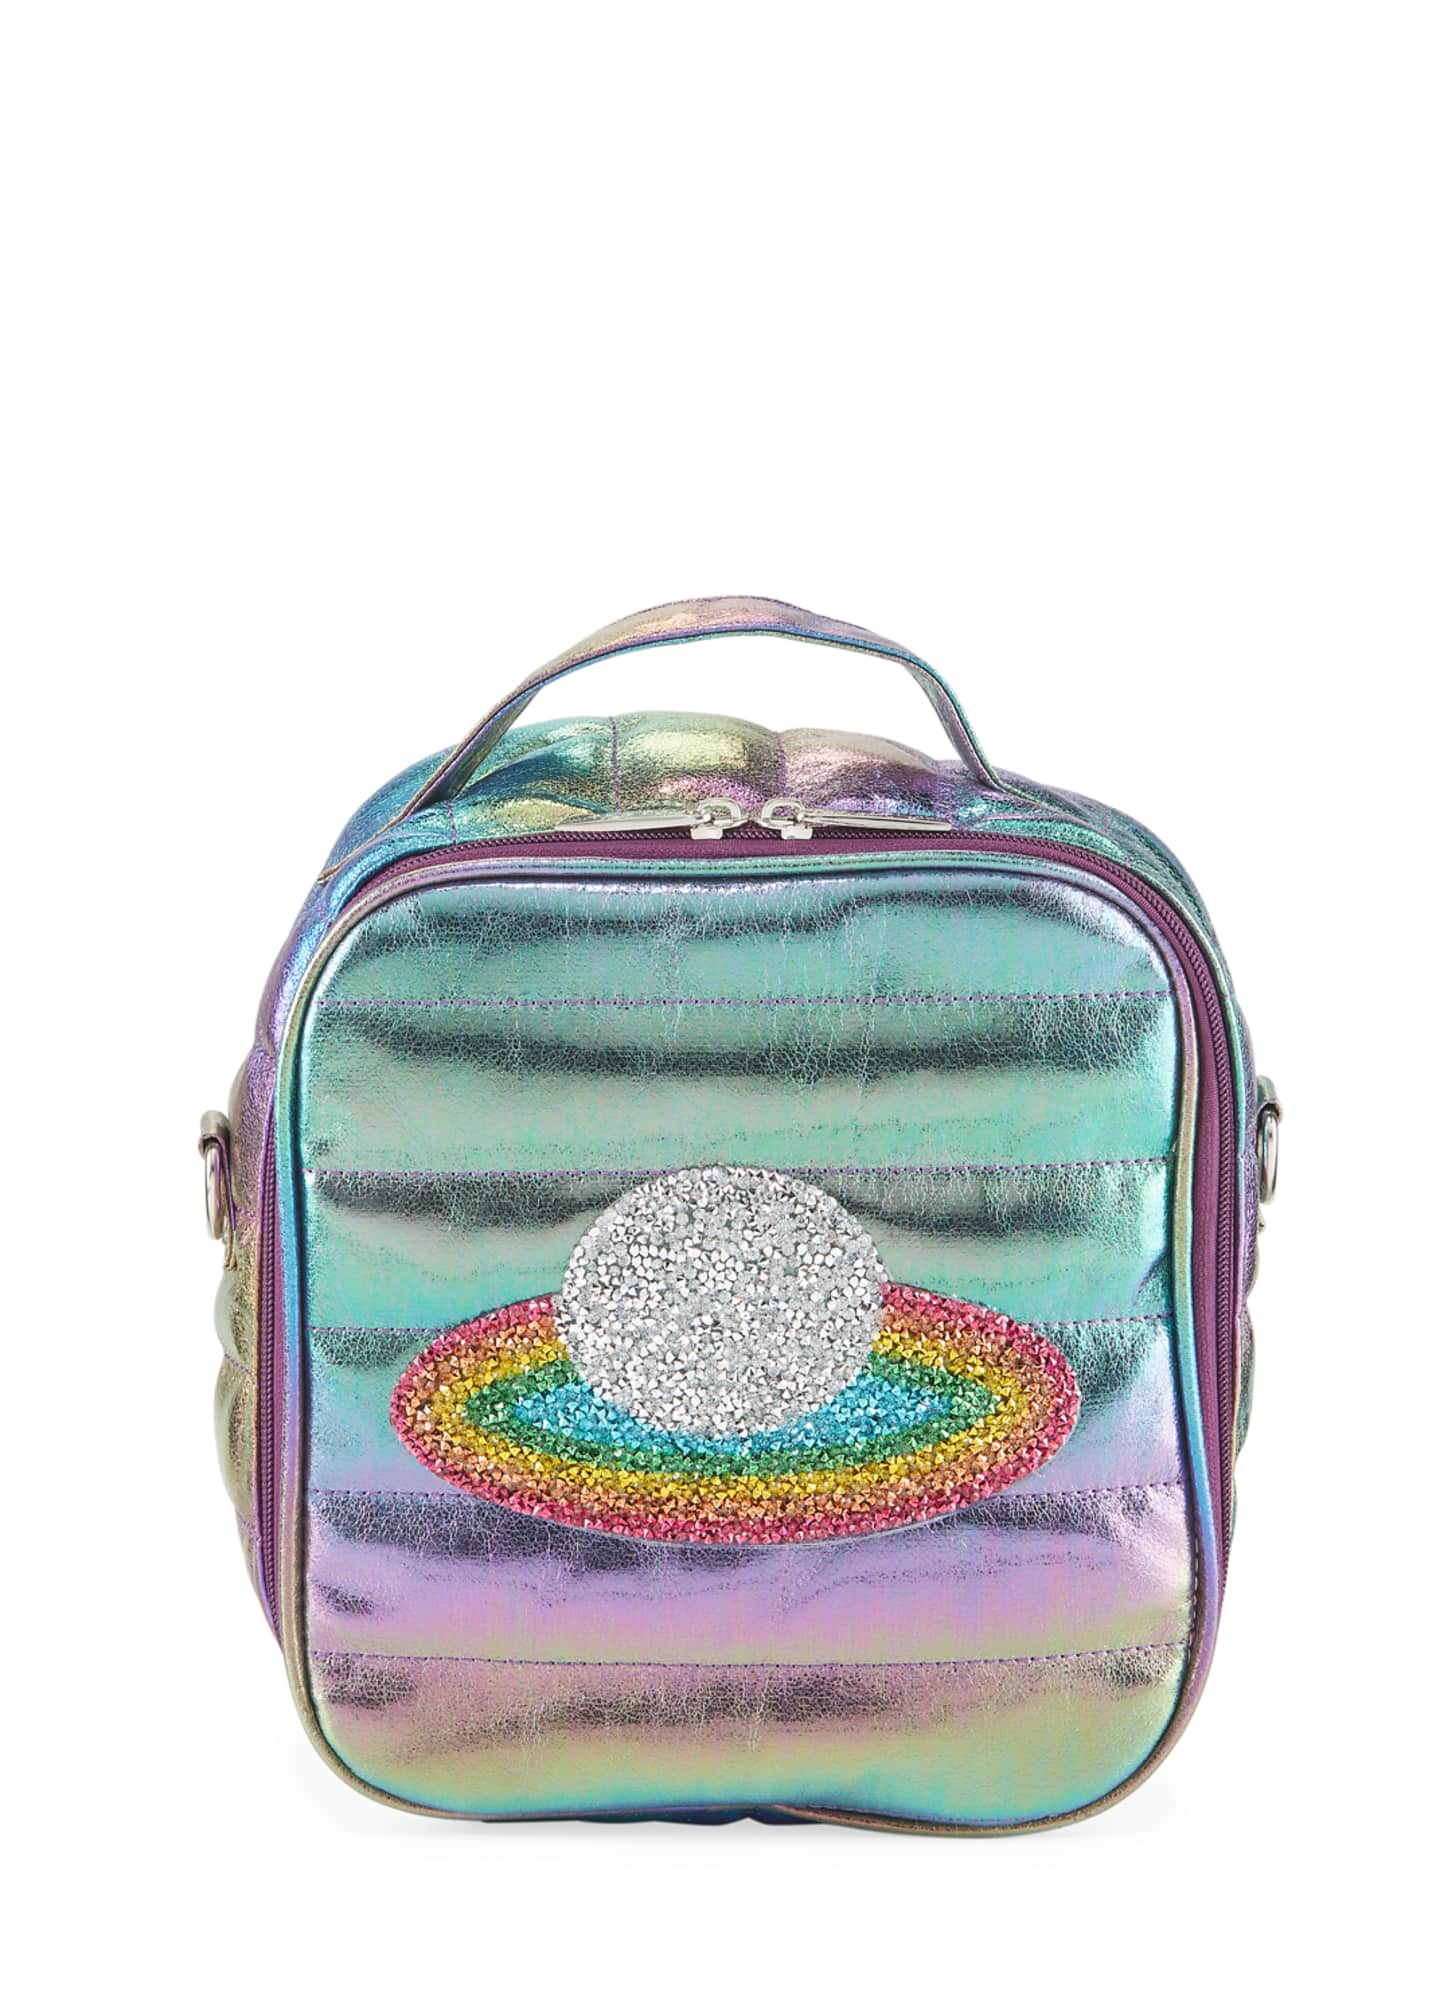 Bari Lynn Kid's Puffy Lunch Box w/ Rainbow